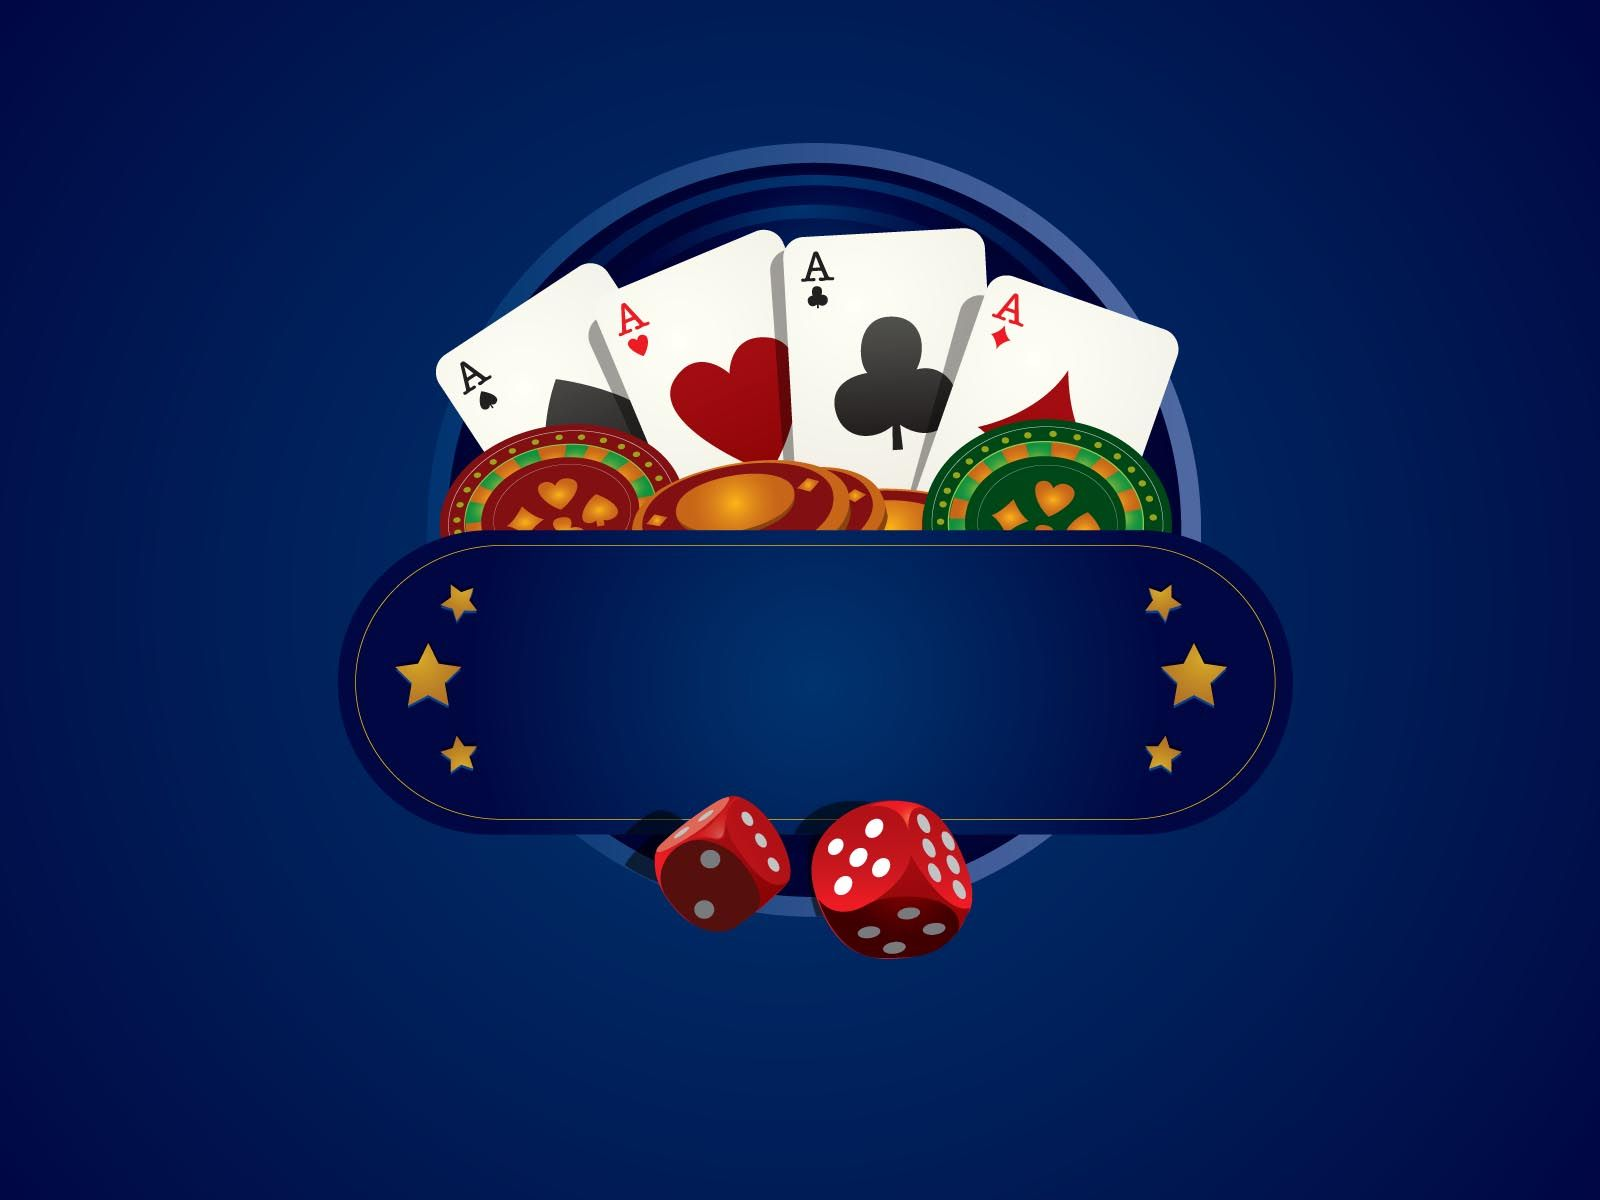 Should Have Record Of Casino Networks